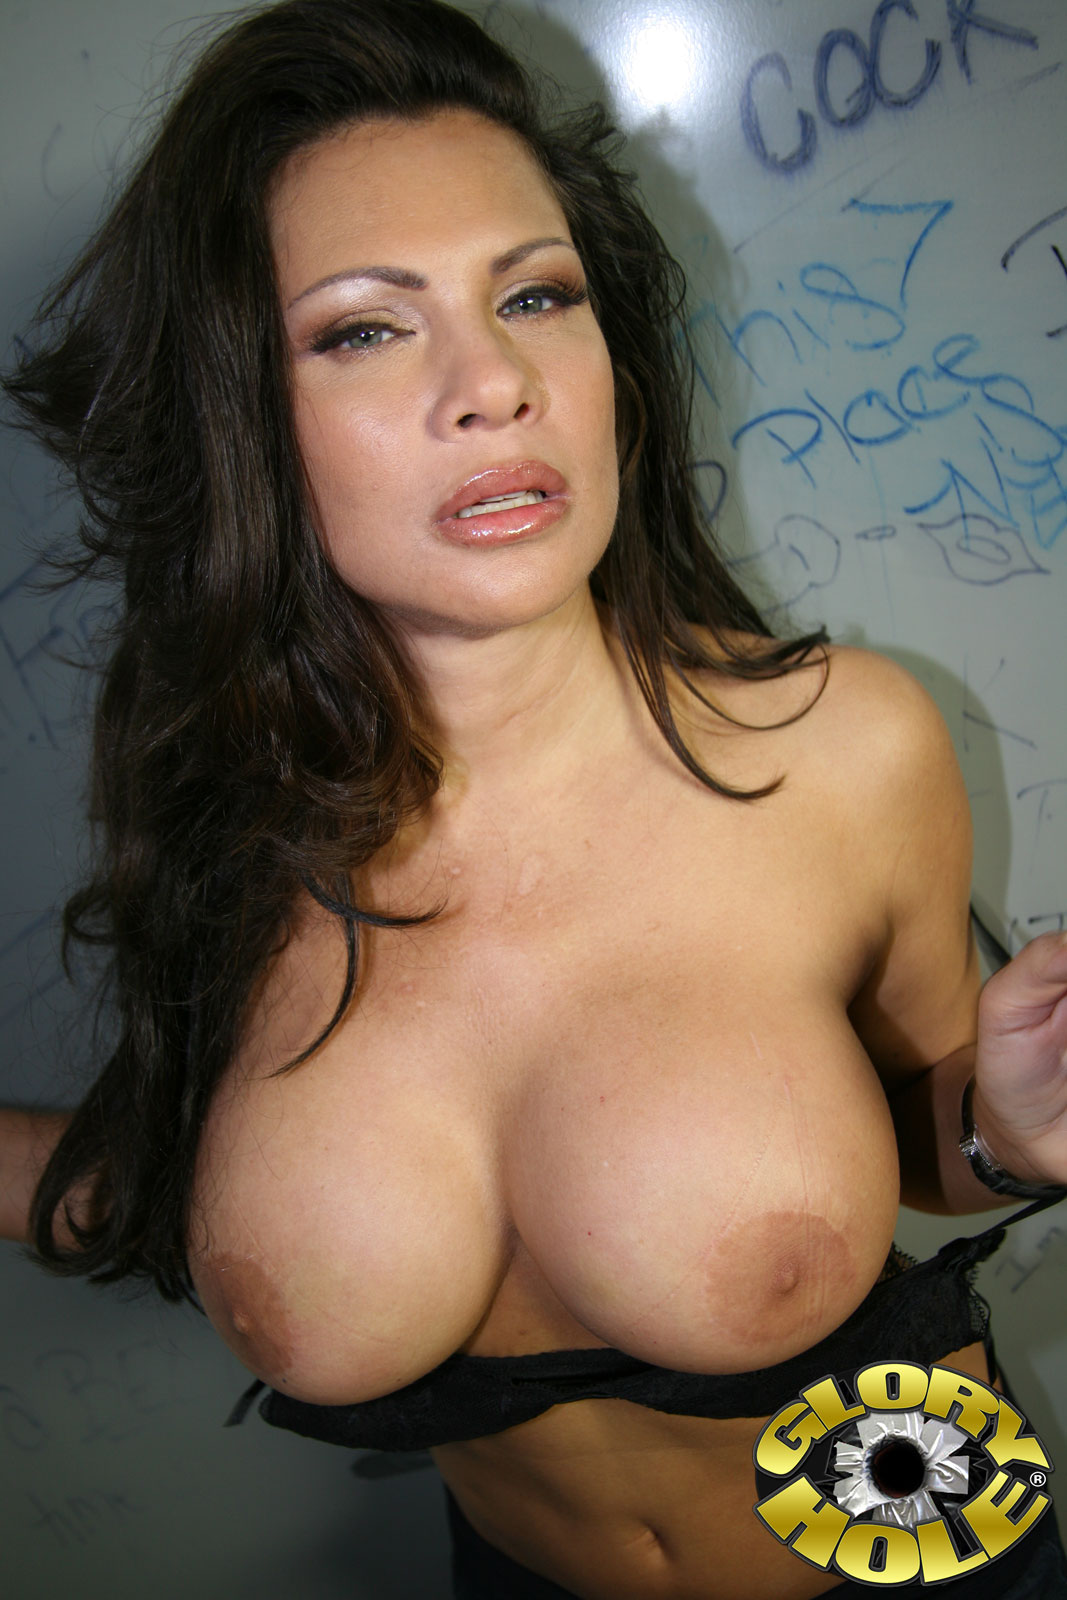 galleries GloryHole content teri weigel pic 09